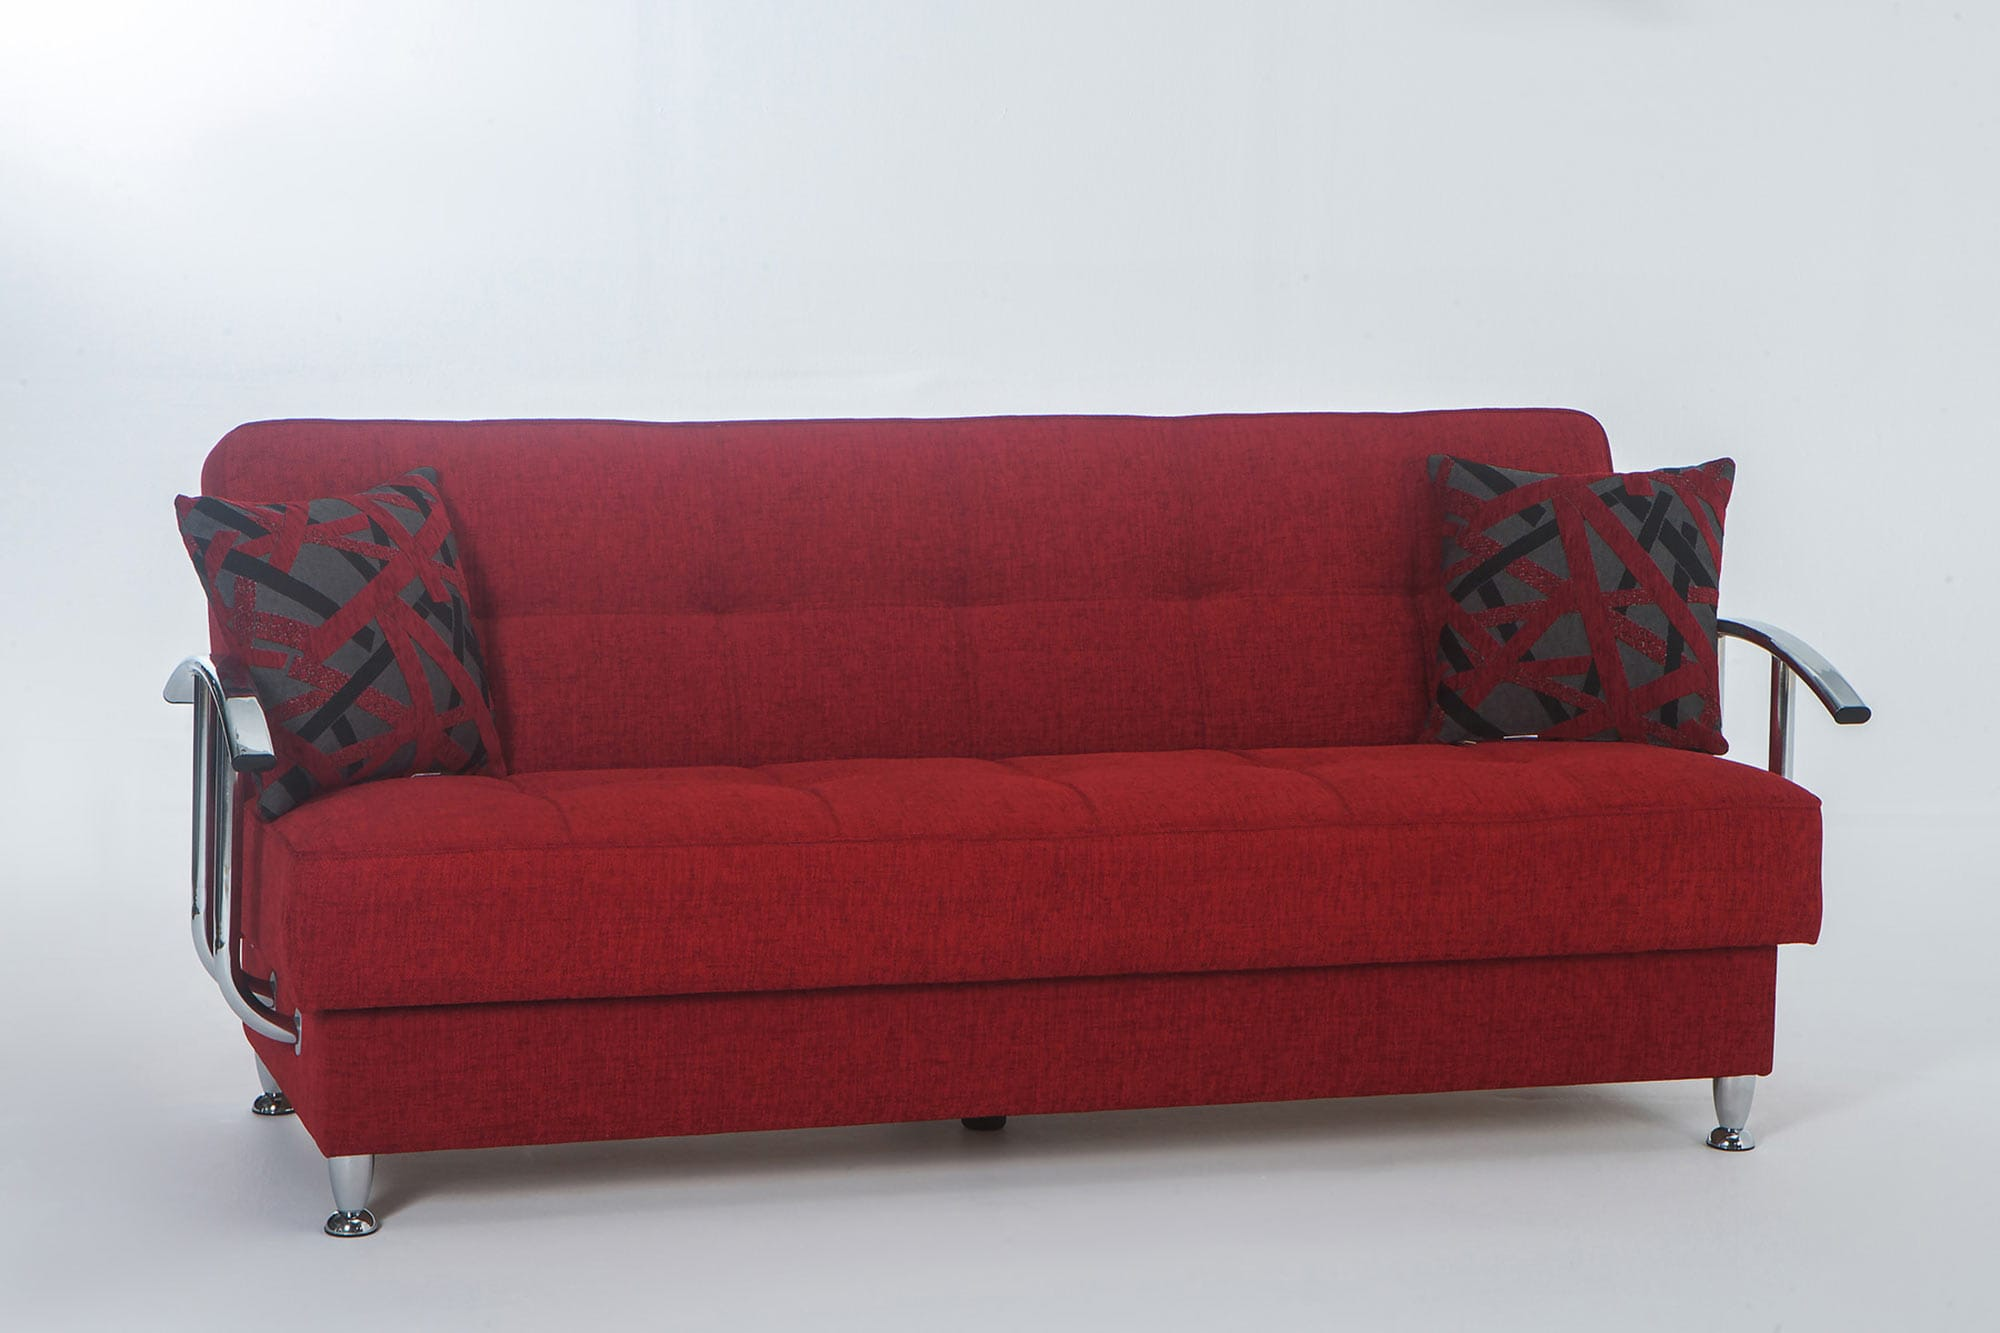 Betsy Story Red Convertible Sofa Bed By Istikbal Furniture